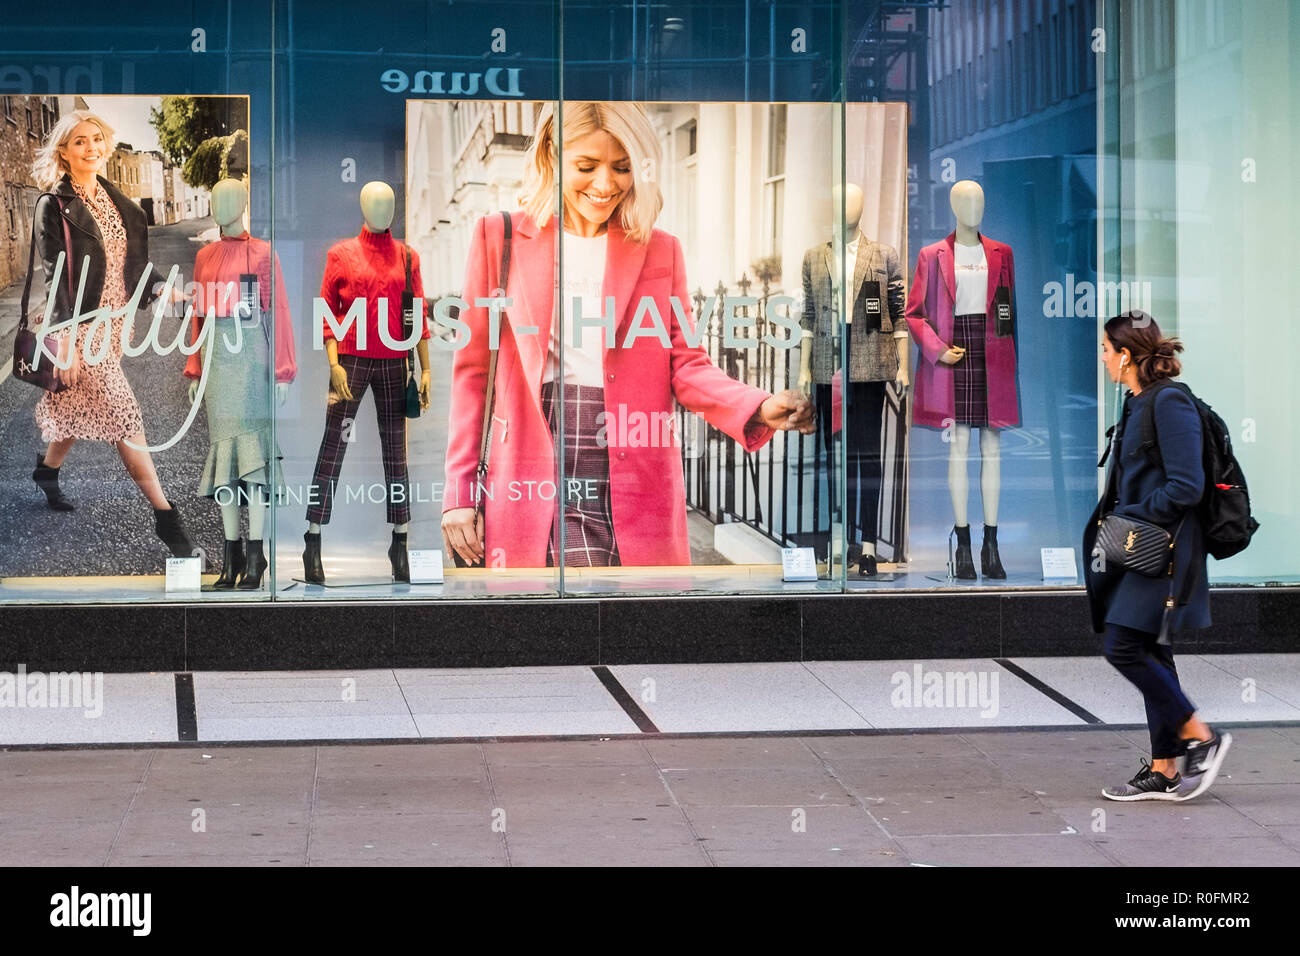 Holly's Must Have collection, M&S store window, Oxford Street, London, England, U.K. - Stock Image